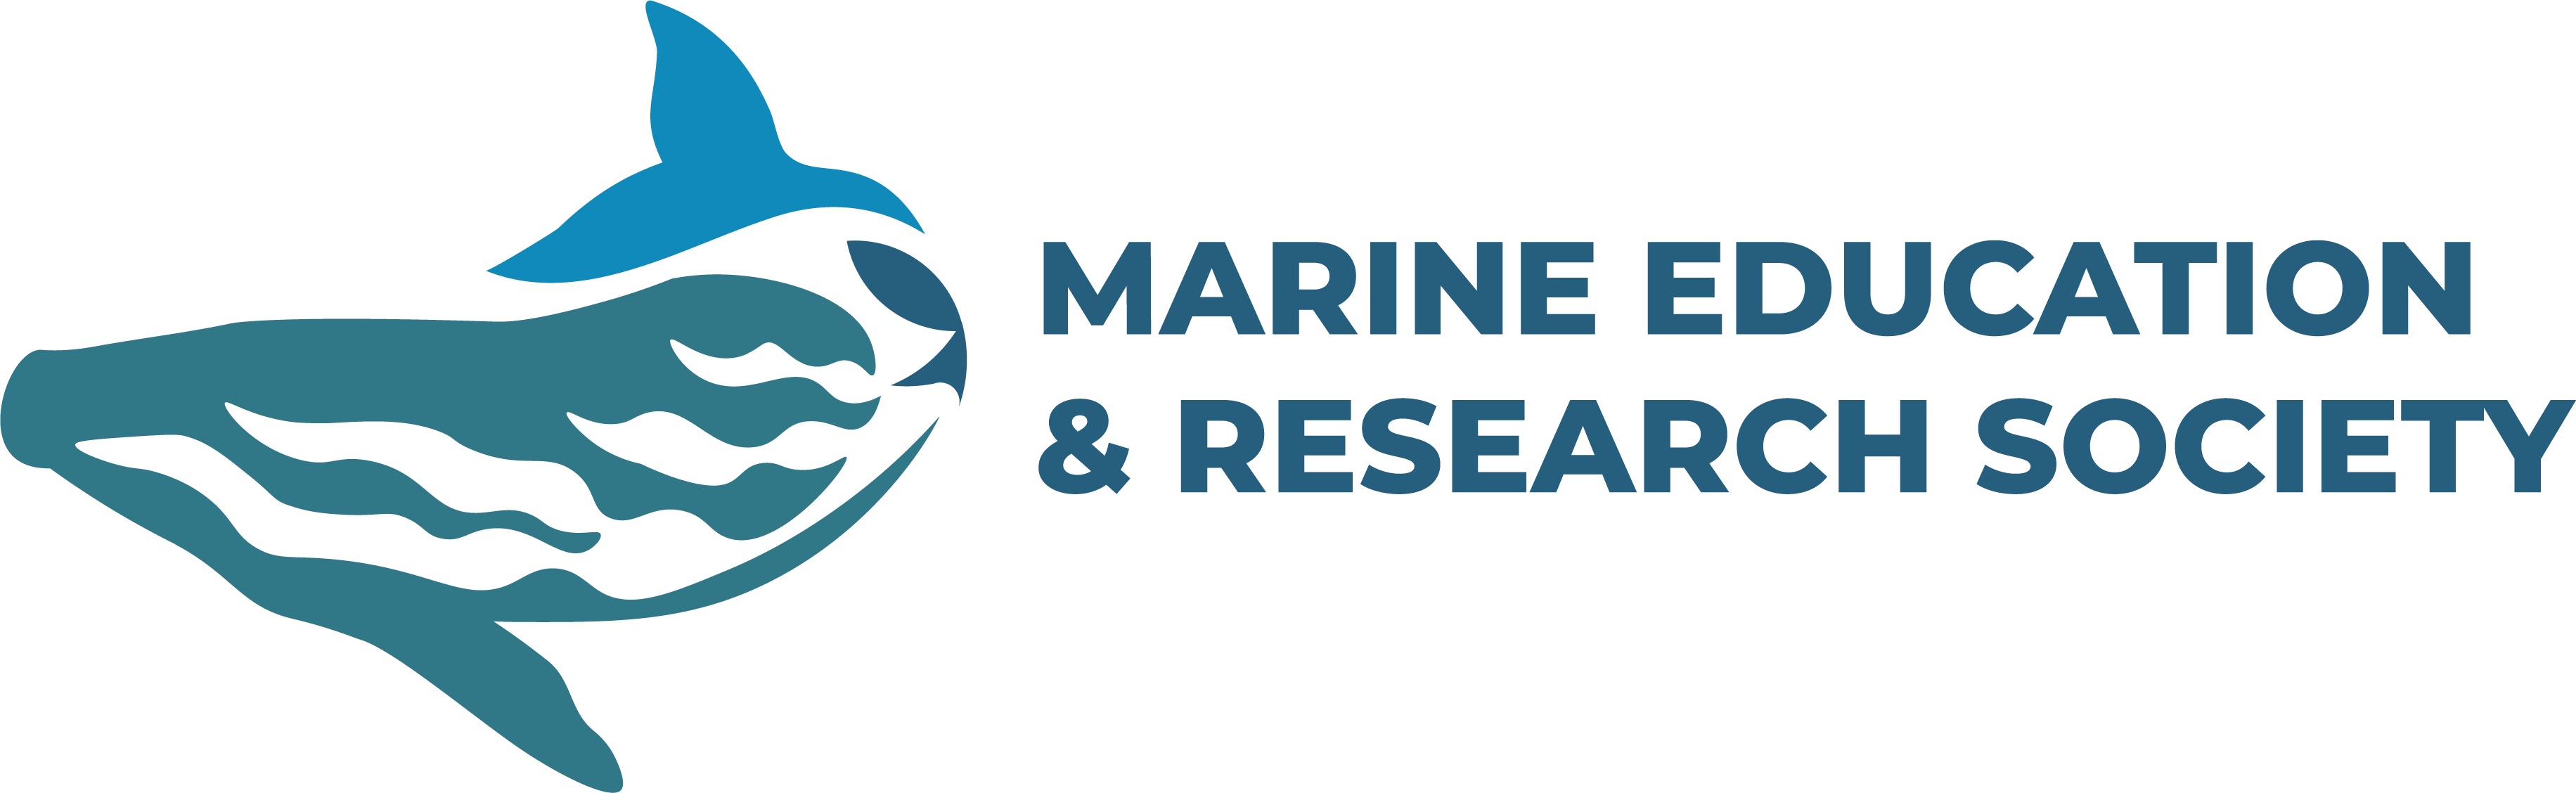 Marine Education and Research Society